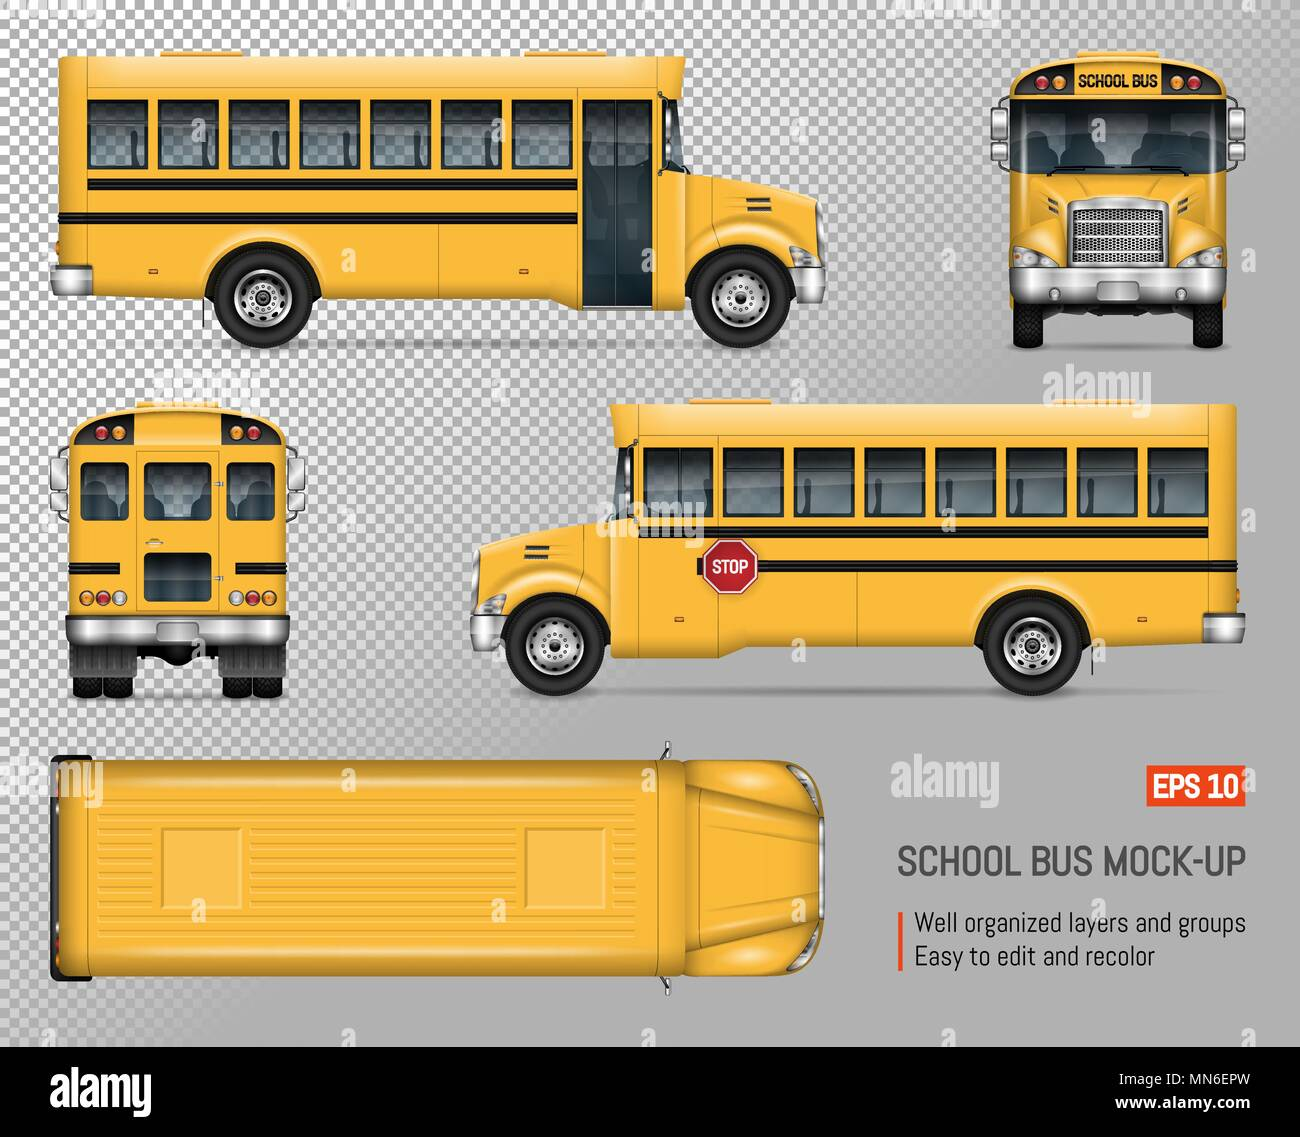 School Bus Vector Mock-up. Isolated Template Of Yellow